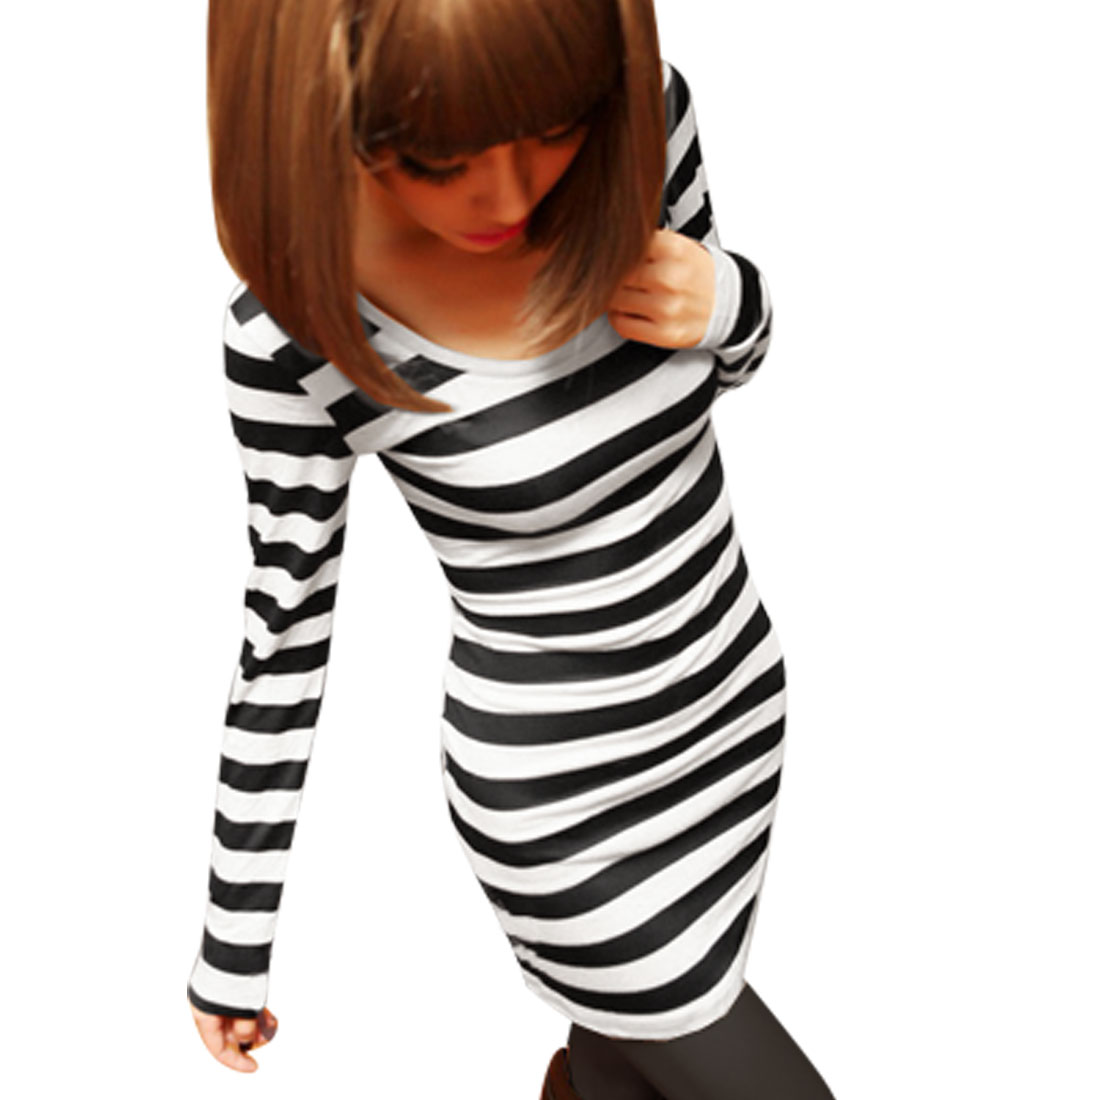 Scoop Neck Black White Bar Striped Pullover Tunic Shirt XS for Lady